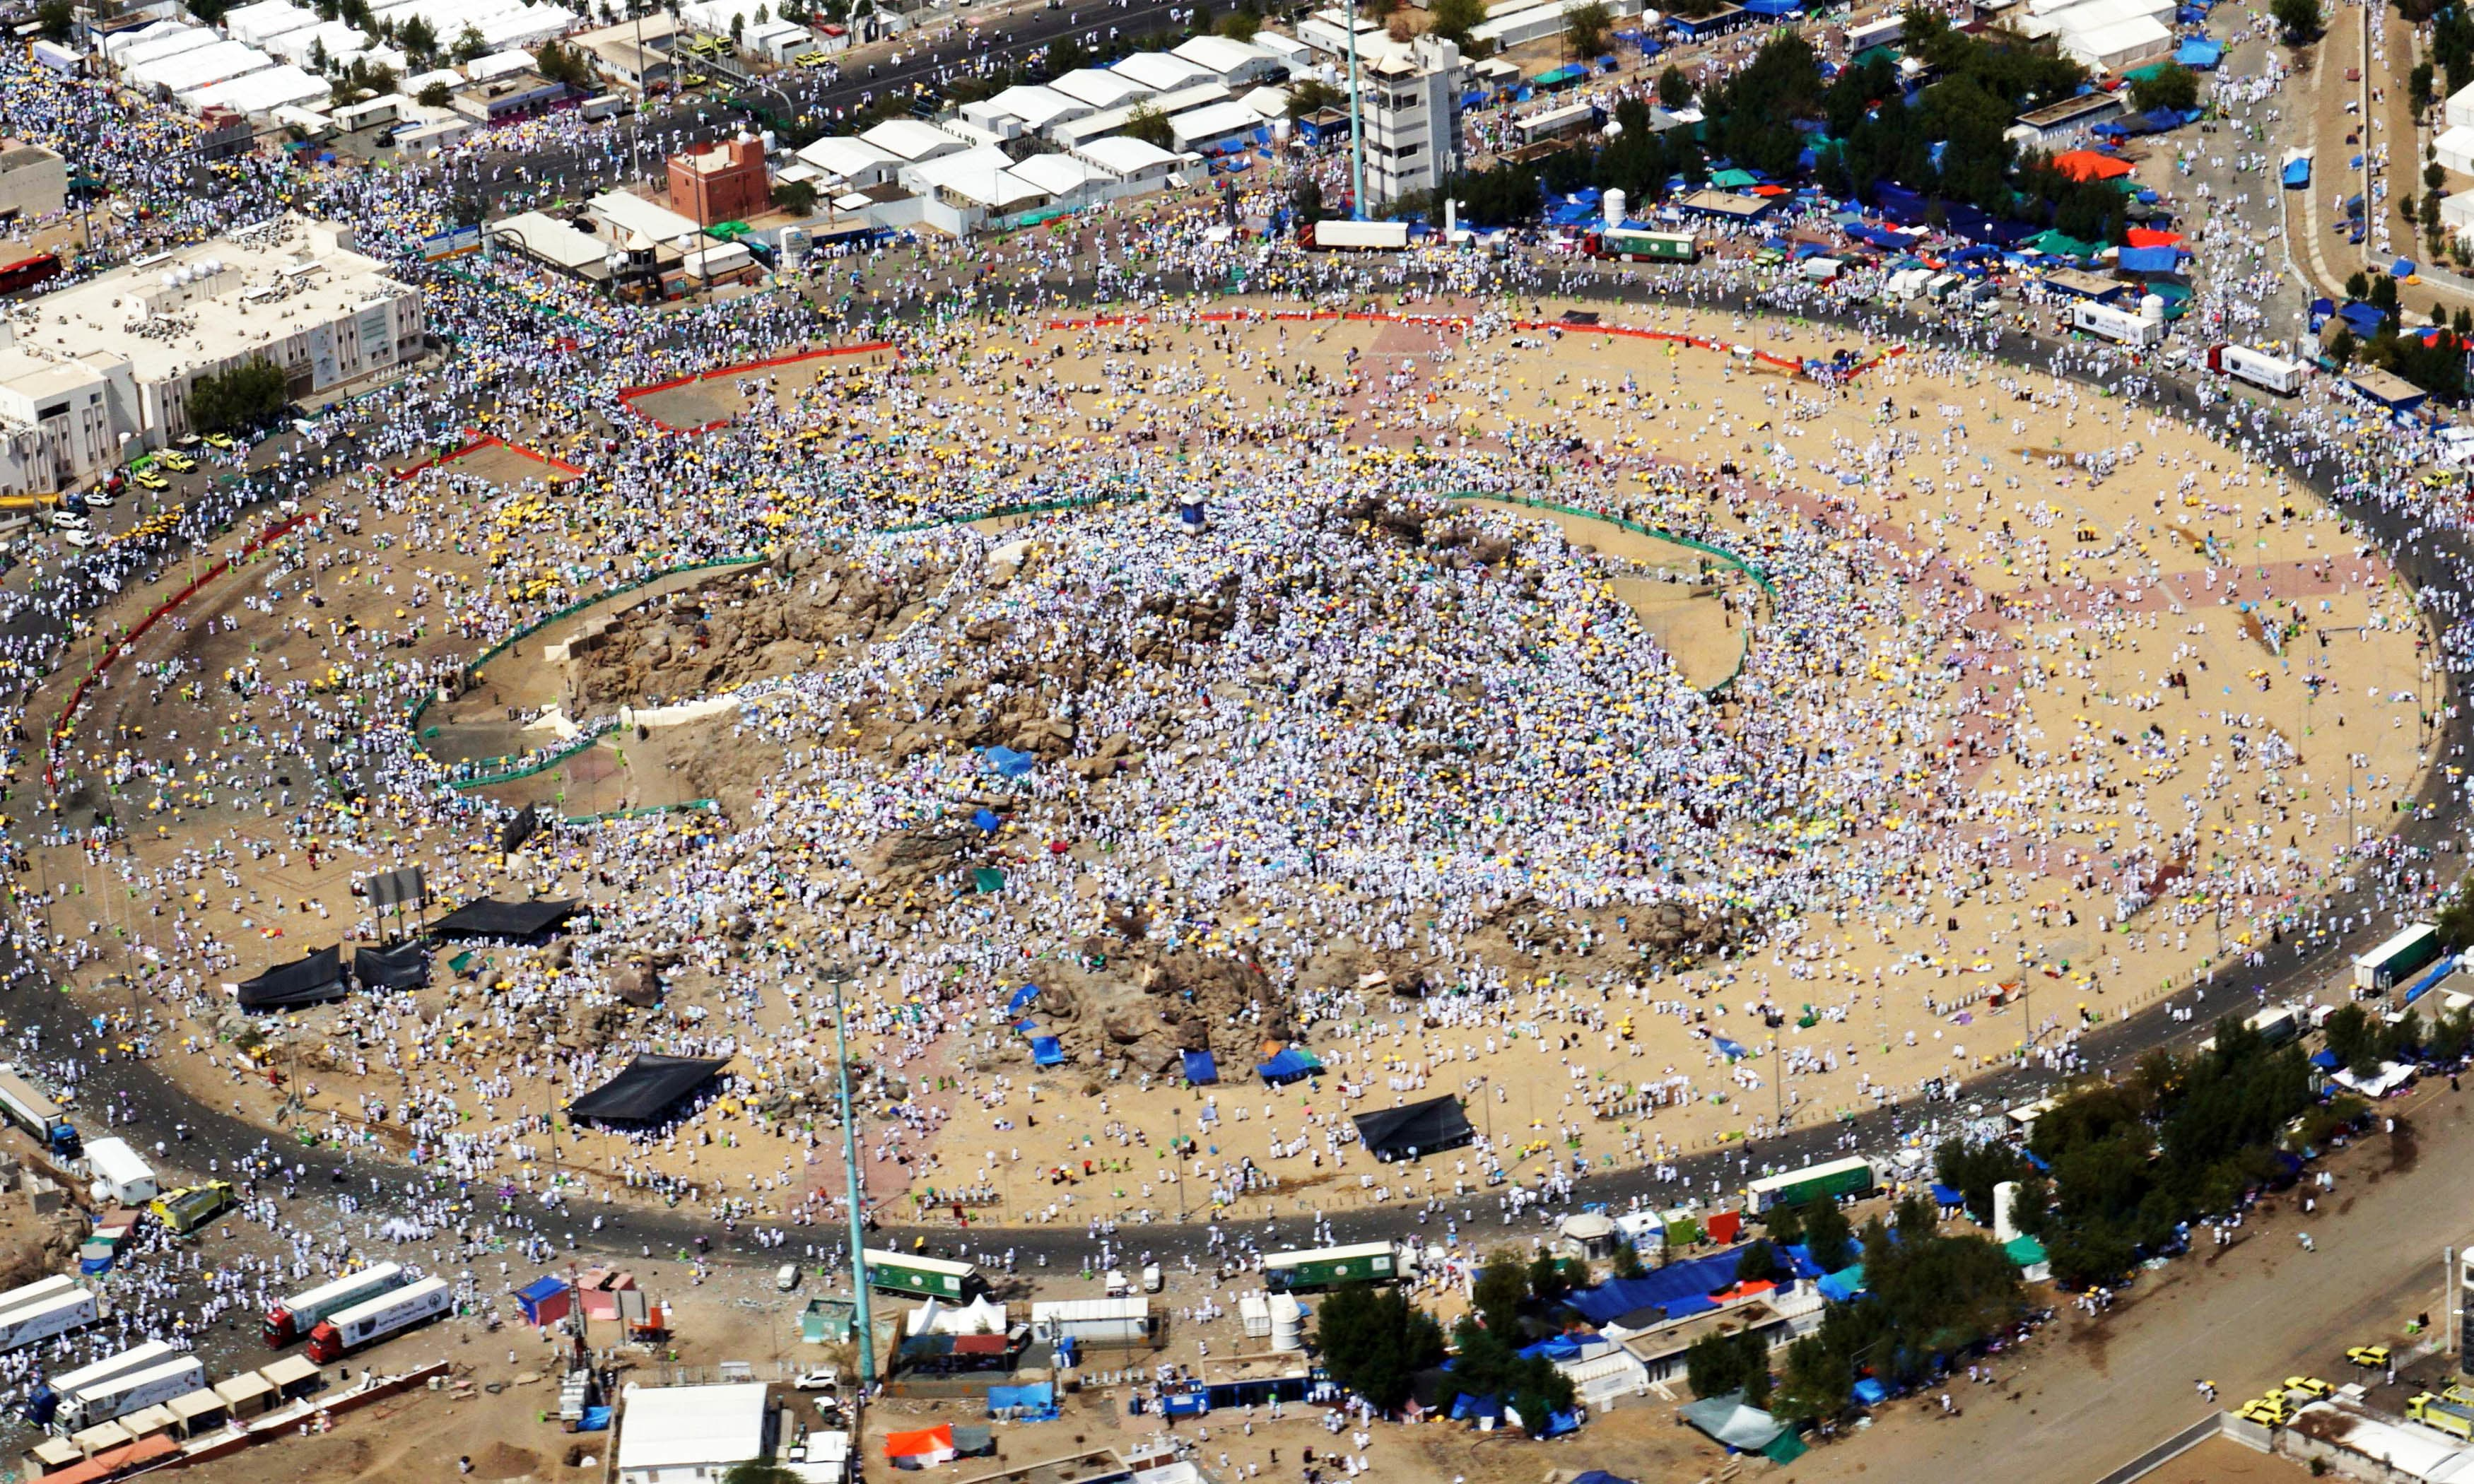 An aerial view shows pilgrims praying at Mount Arafat, also known as Jabal al-Rahma (Mount of Mercy). —AFP